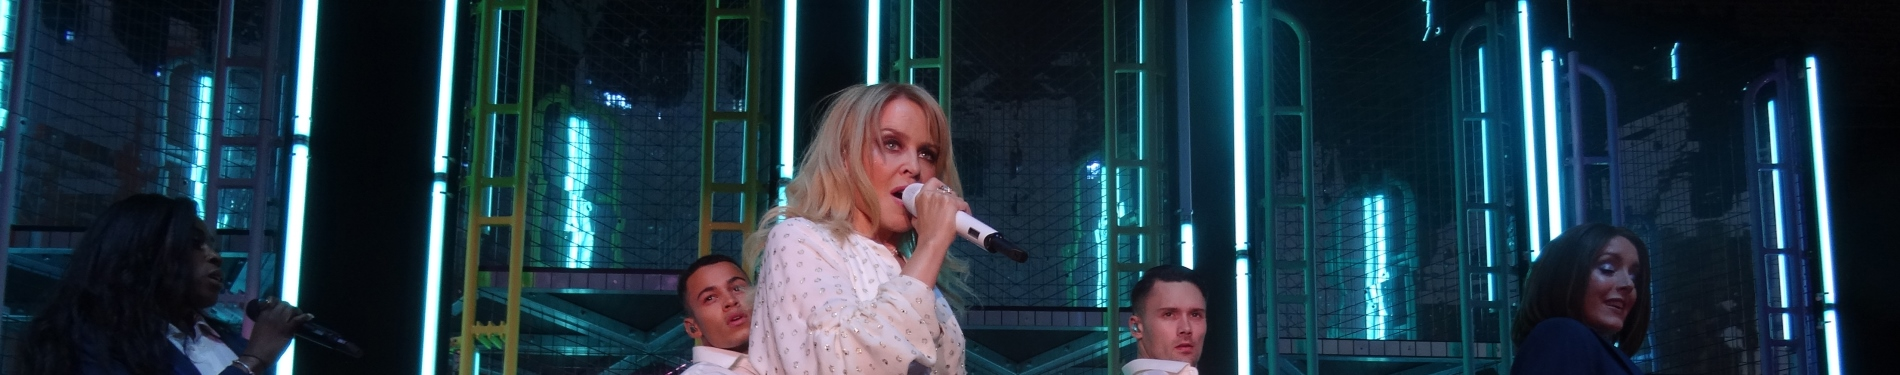 kylie-minogue-glastonbury-case-study-header